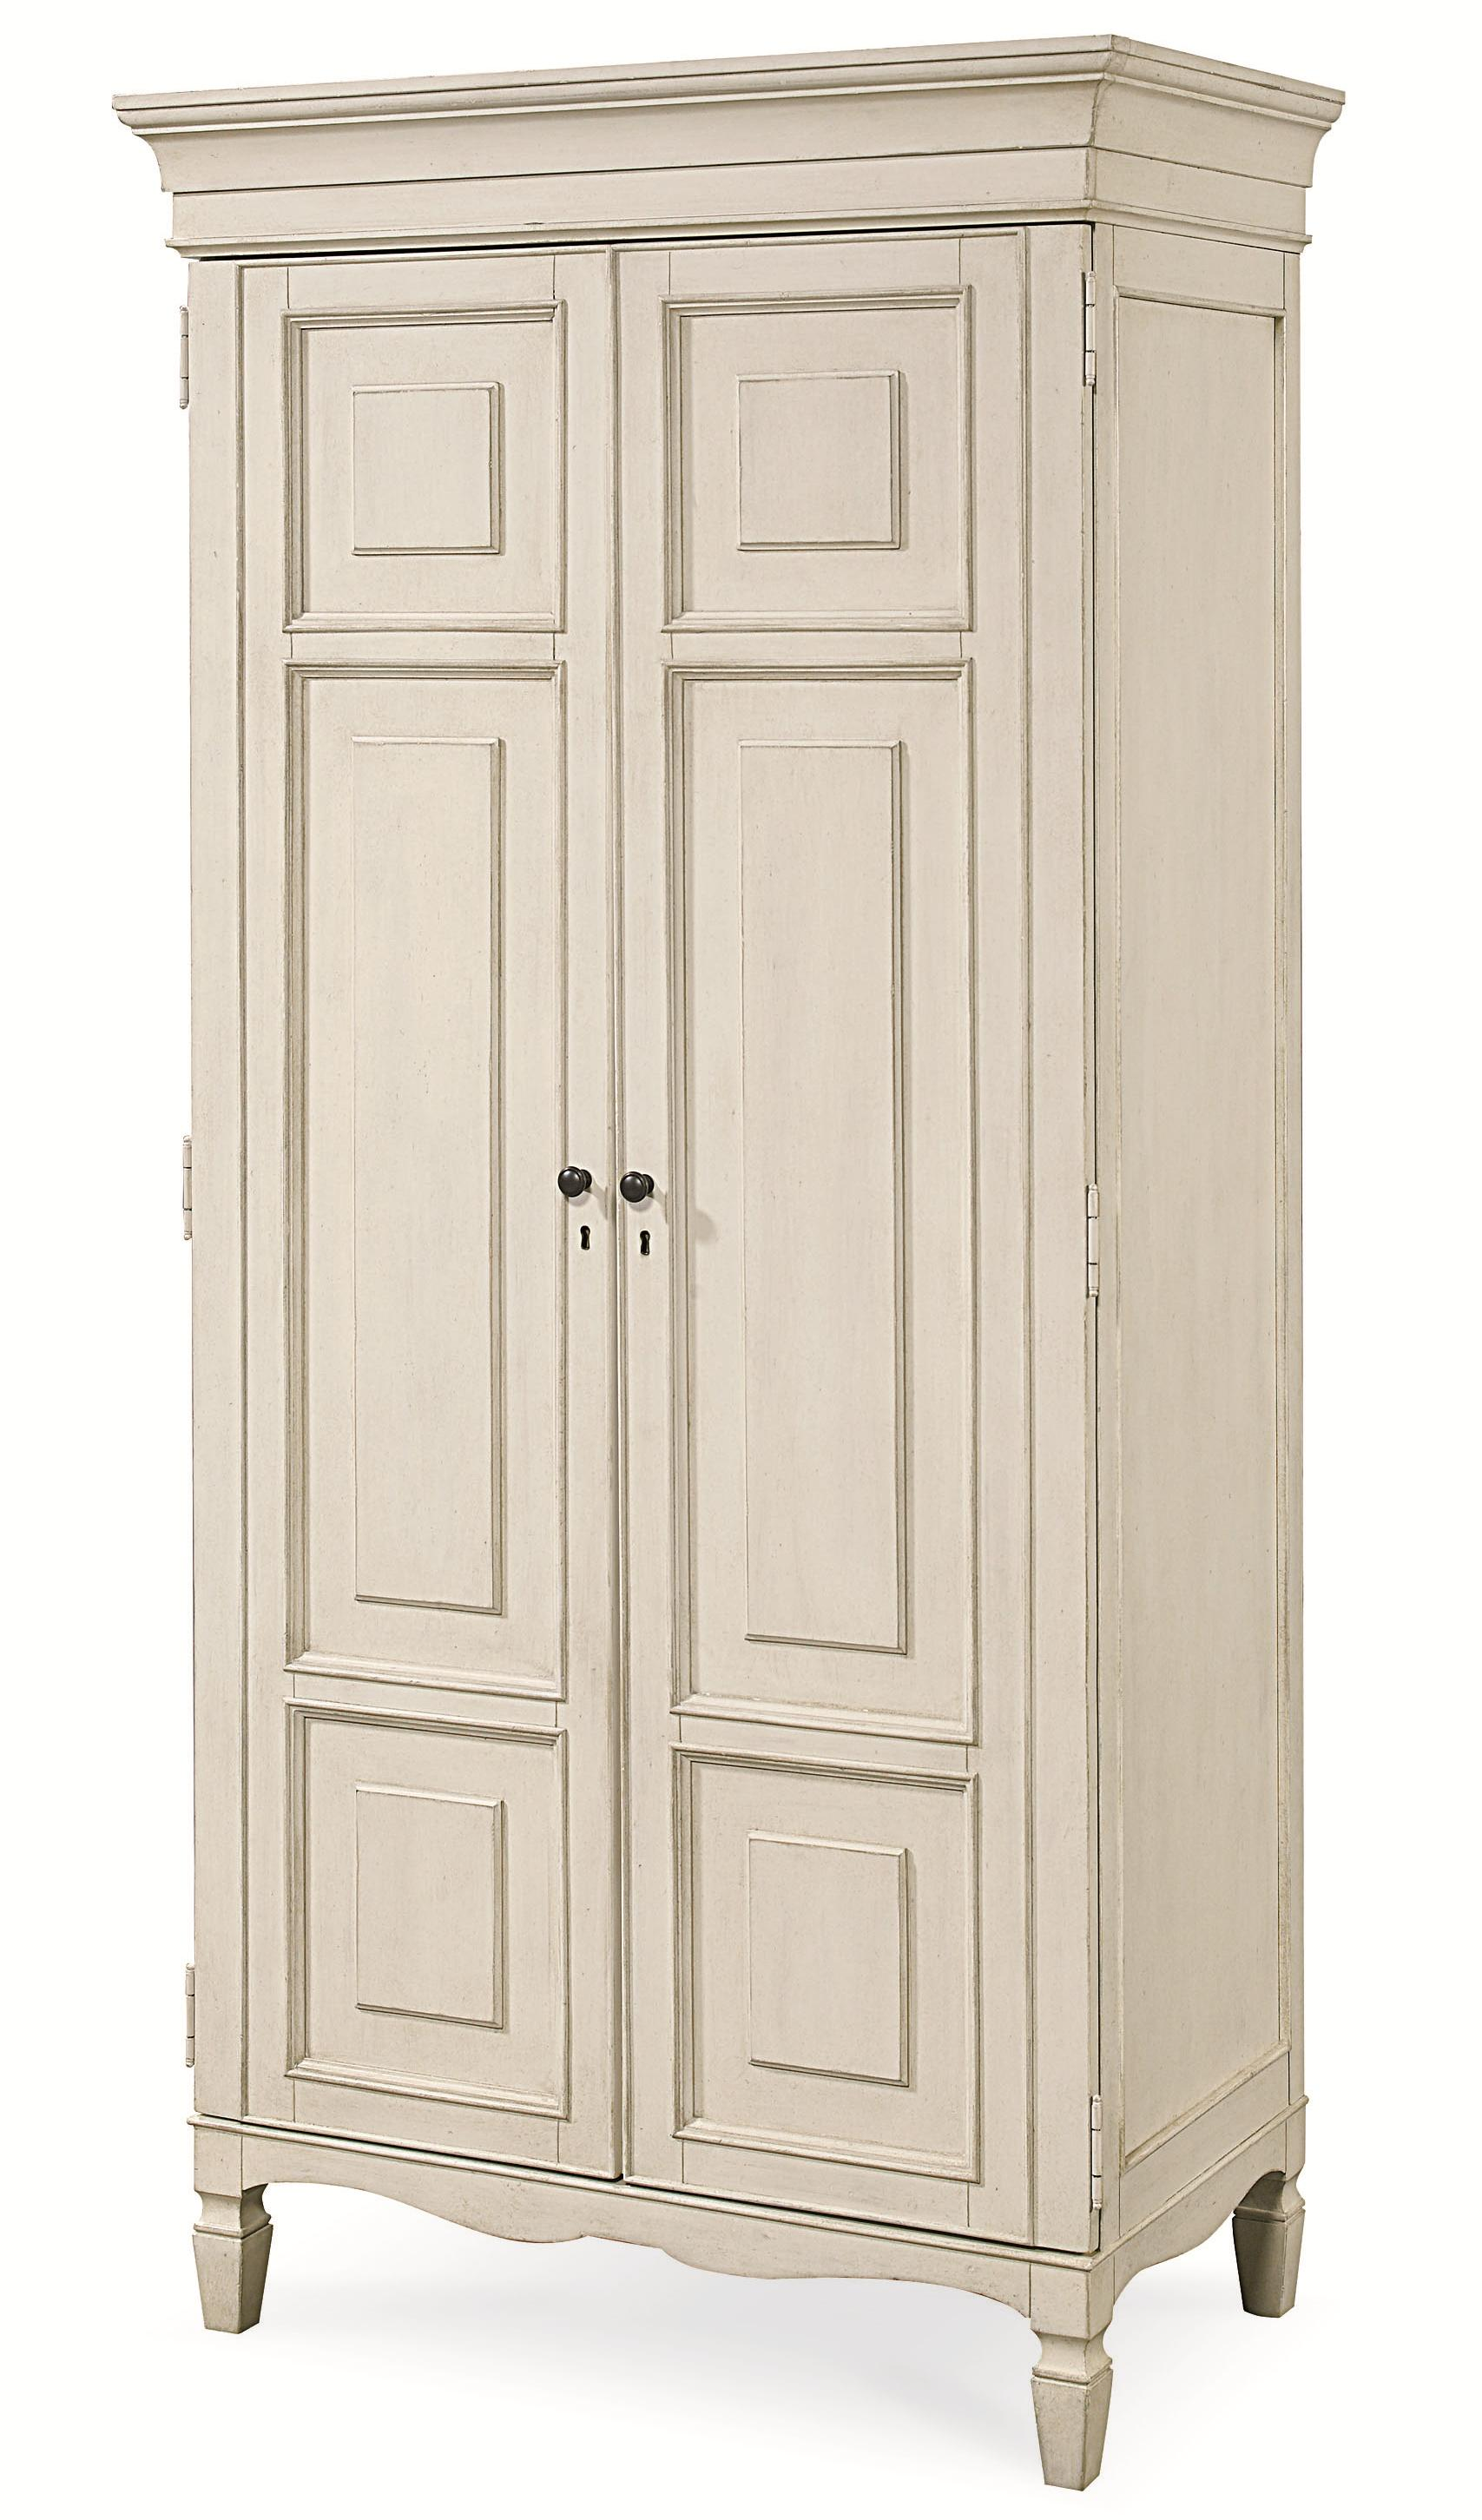 2 door tall cabinet by universal wolf and gardiner wolf for 1 door storage cabinet